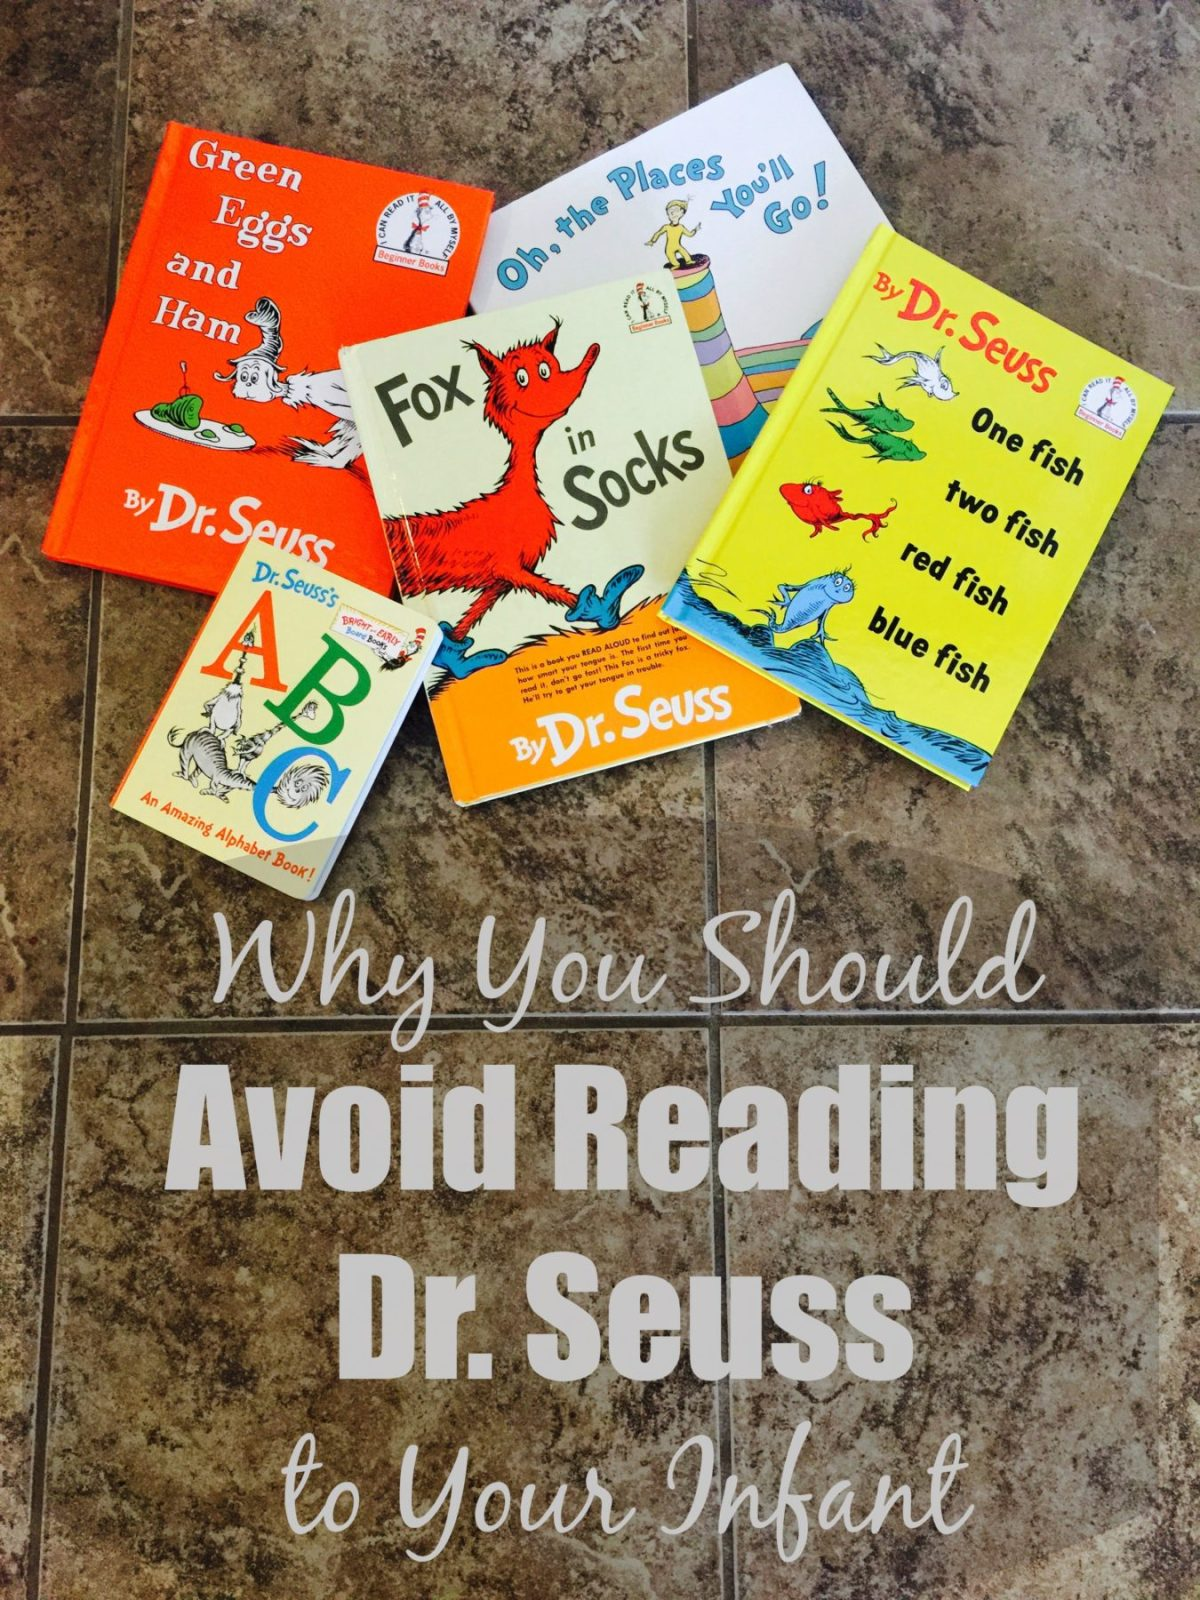 Why You Should Avoid Reading Dr. Seuss to Your Infant